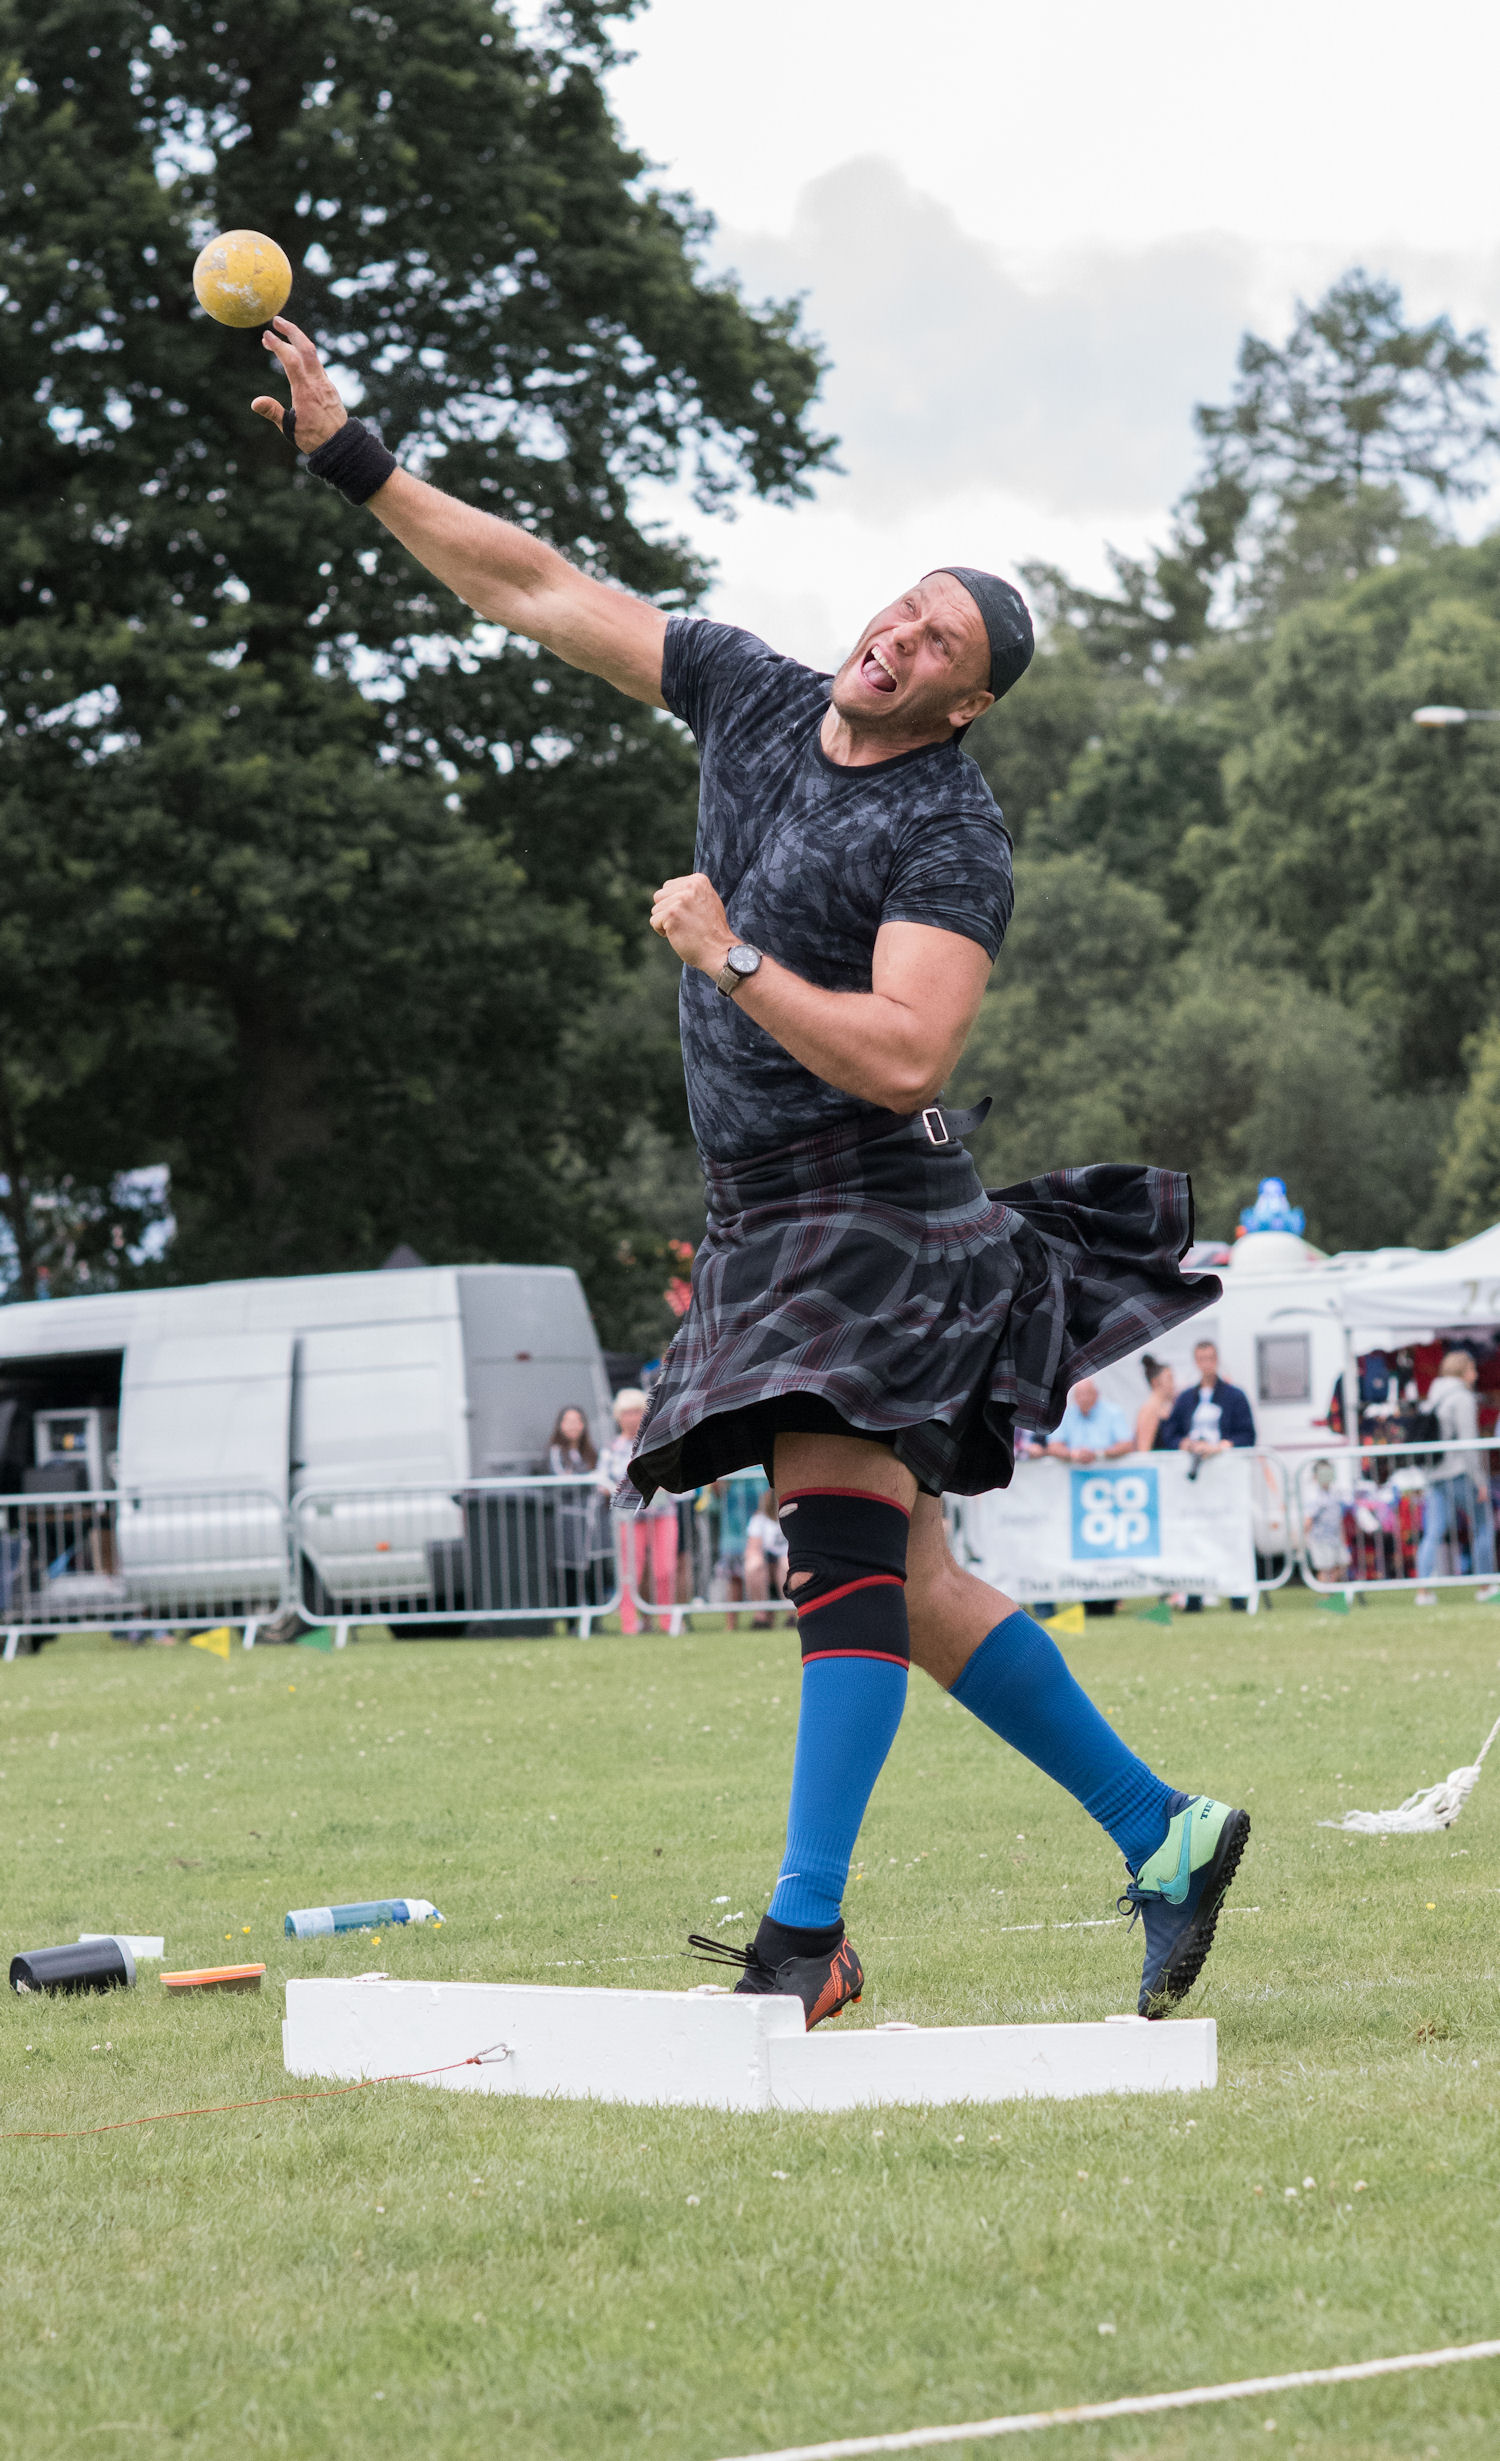 Highland Games Image 12